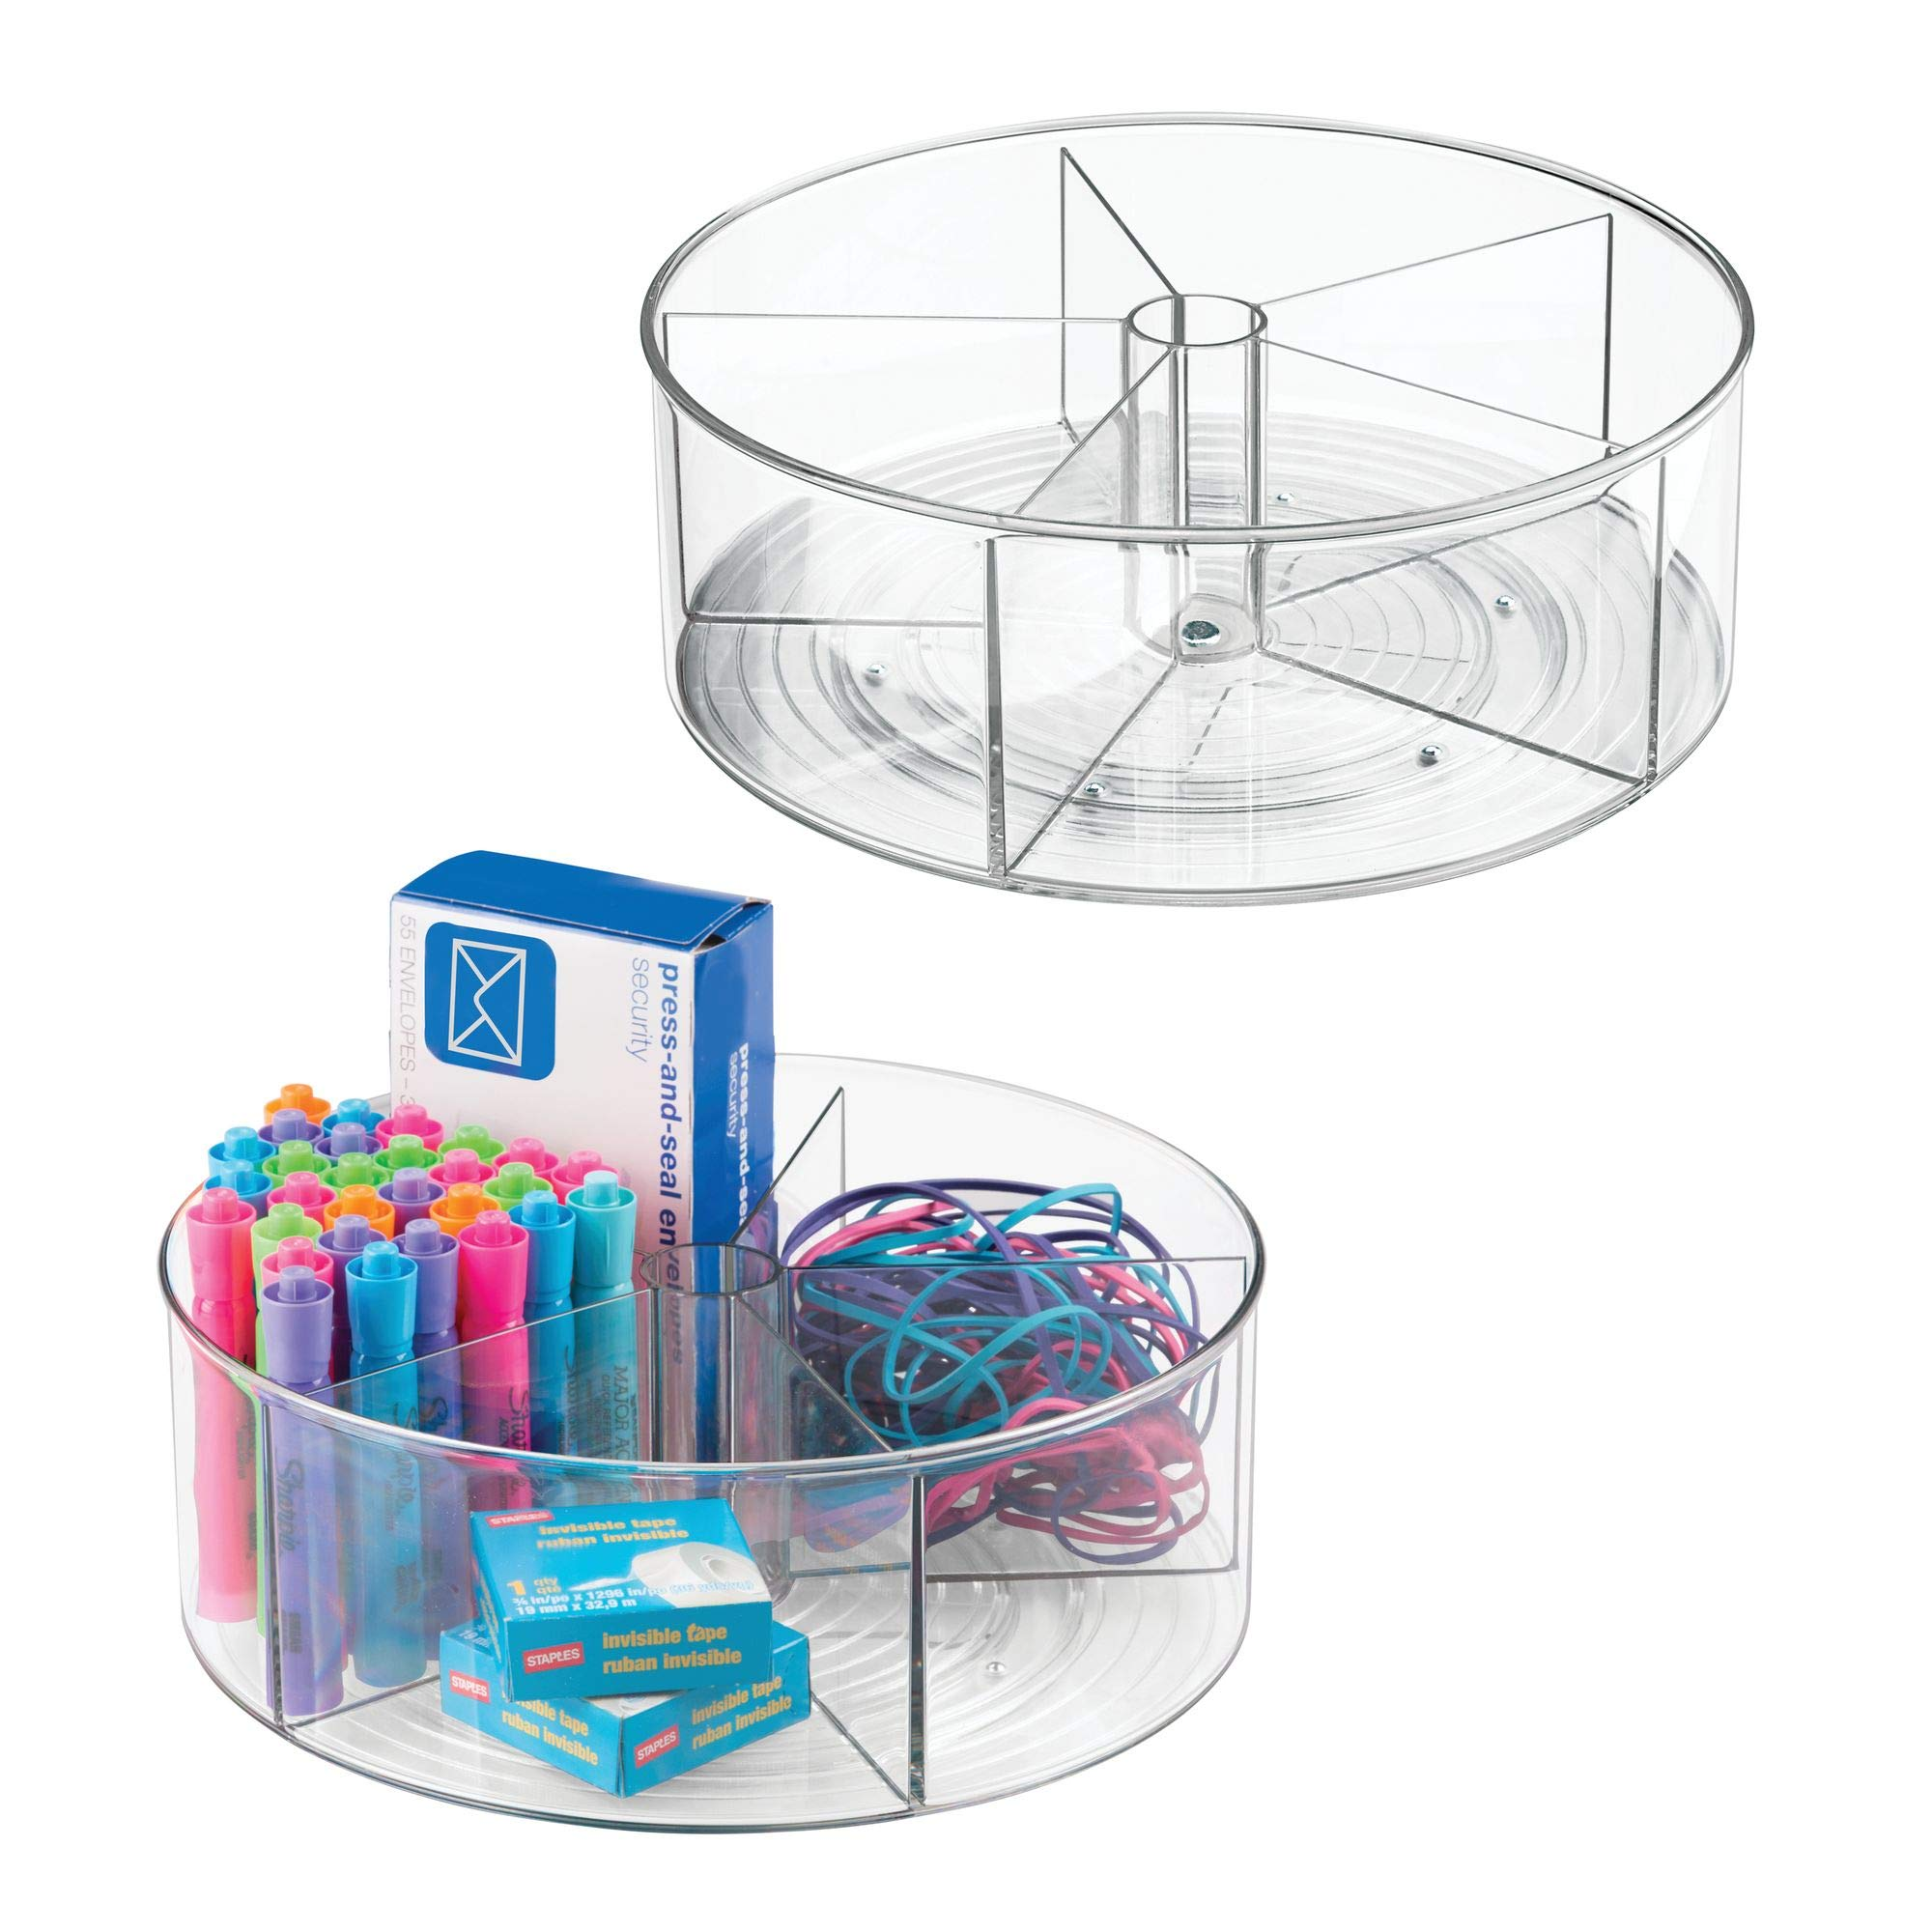 mDesign Divided Turntable for Counters or Tabletops - Pack of 2, Clear